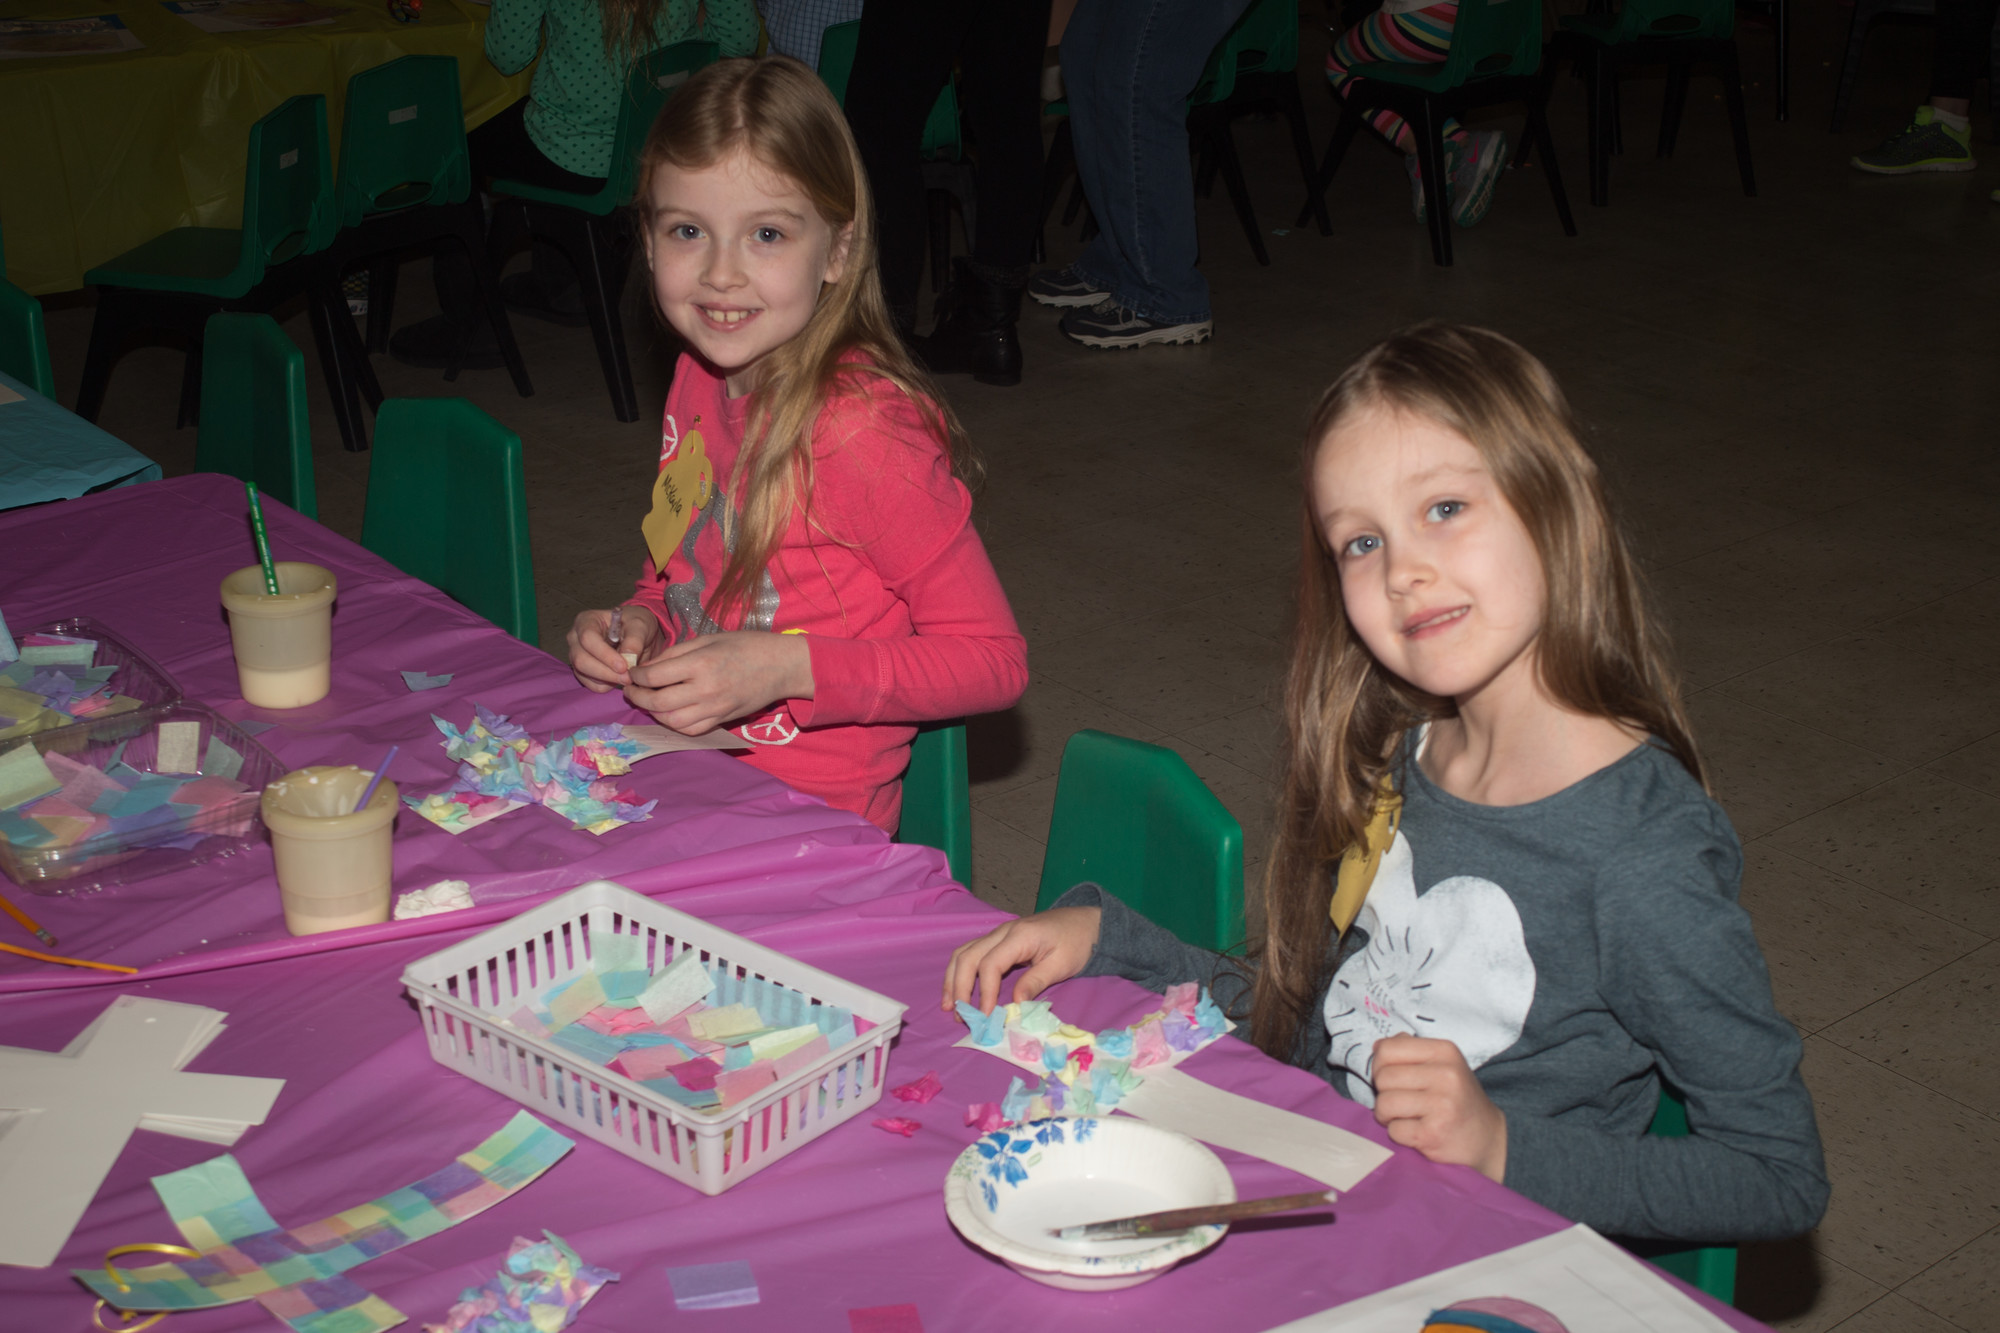 At the Easter party, Mckayla, 9, and Haily, 7, decorated crosses.